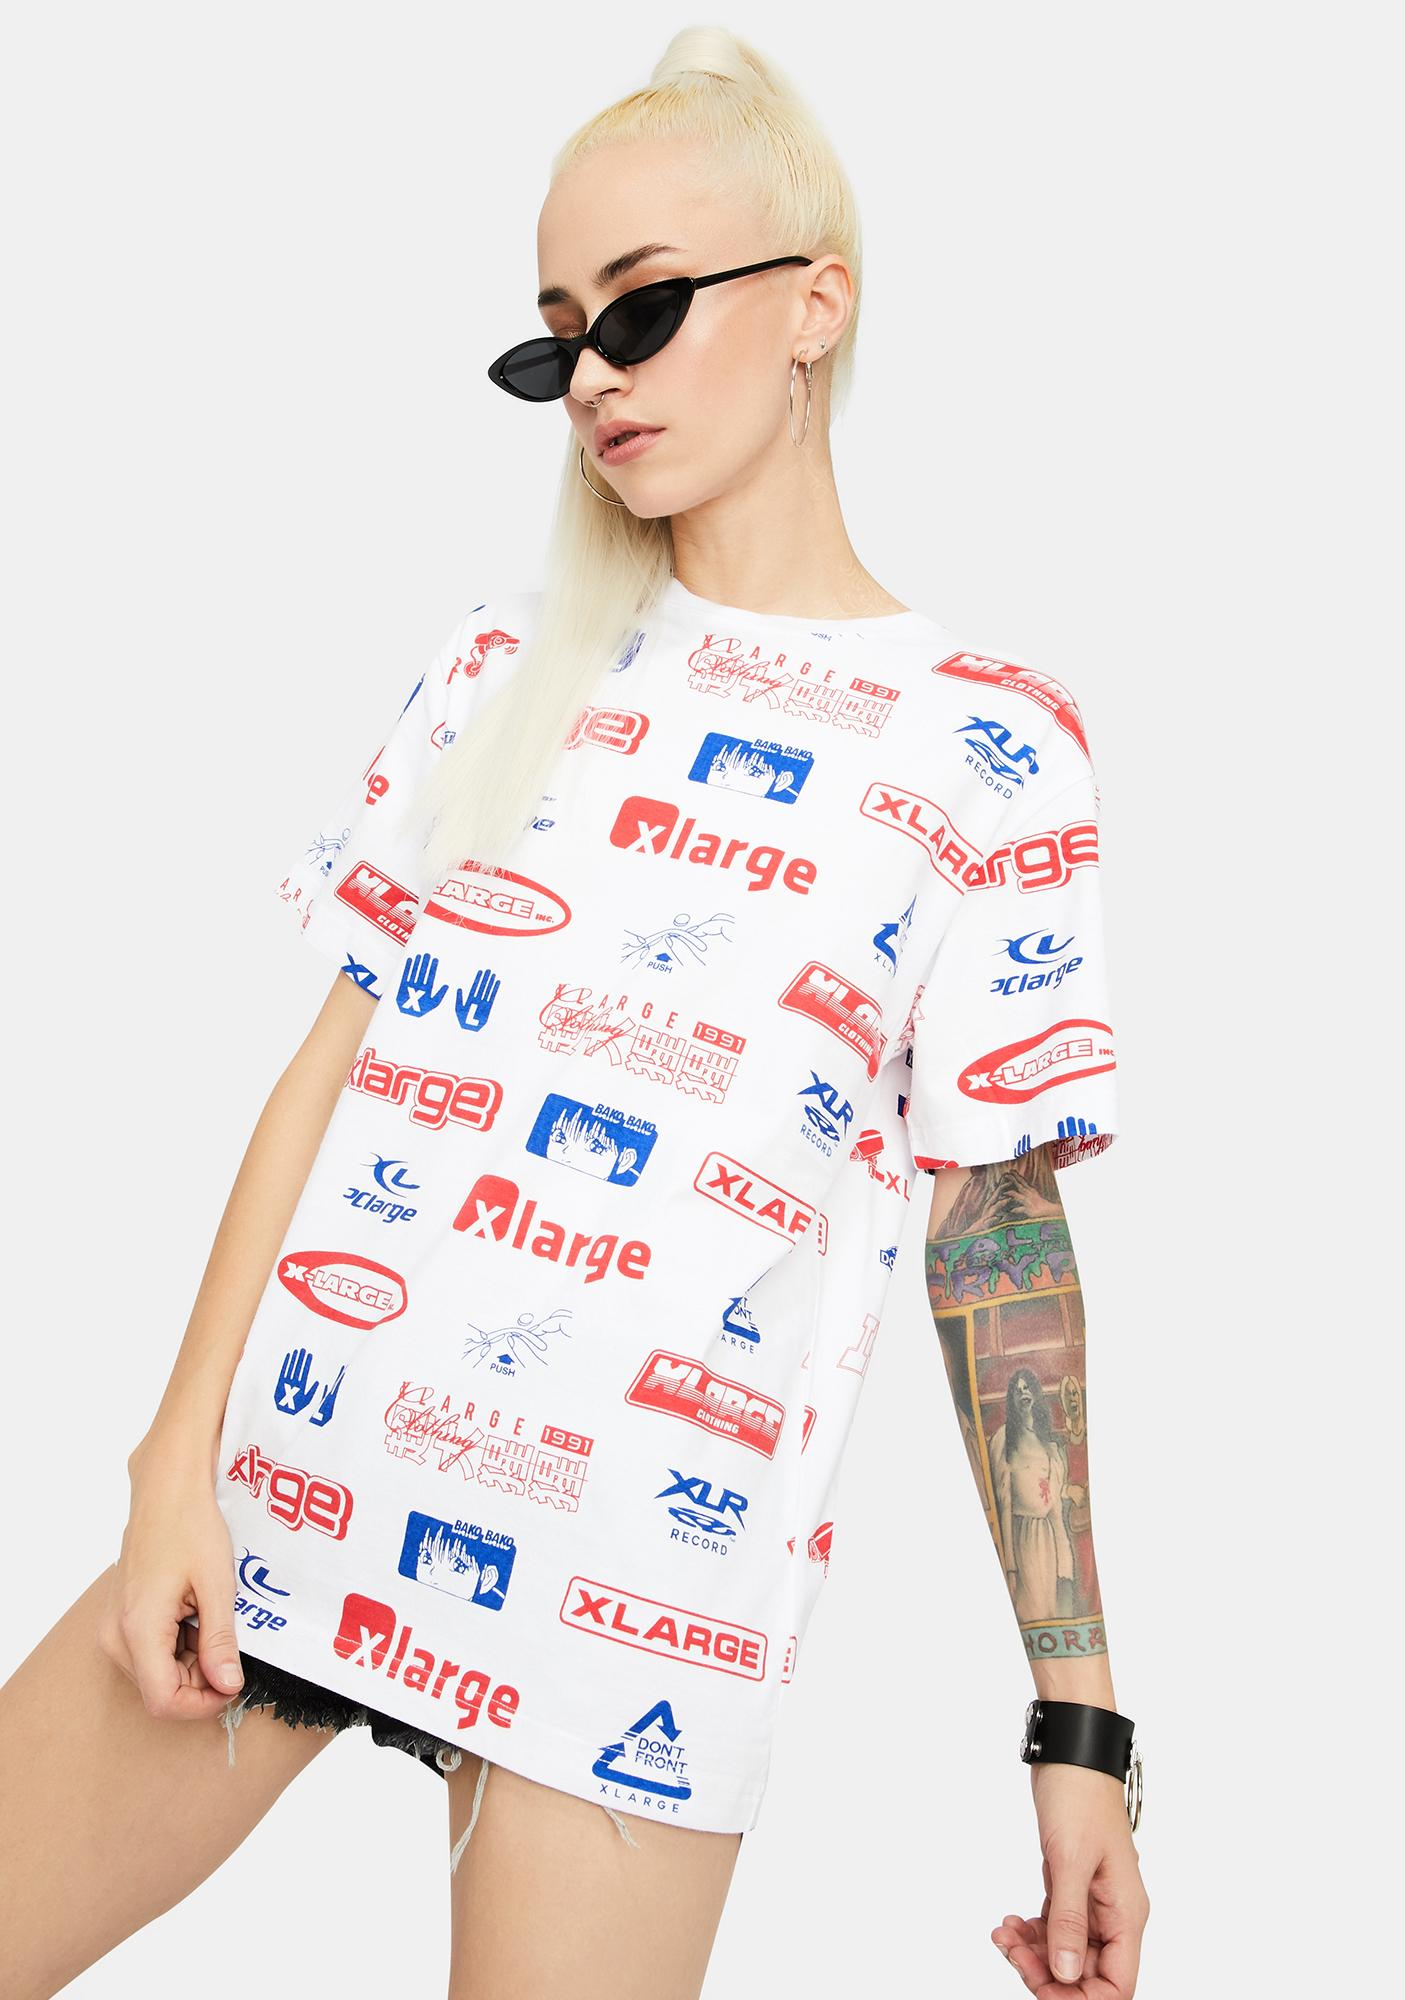 XLARGE All Over Print Graphic Tee